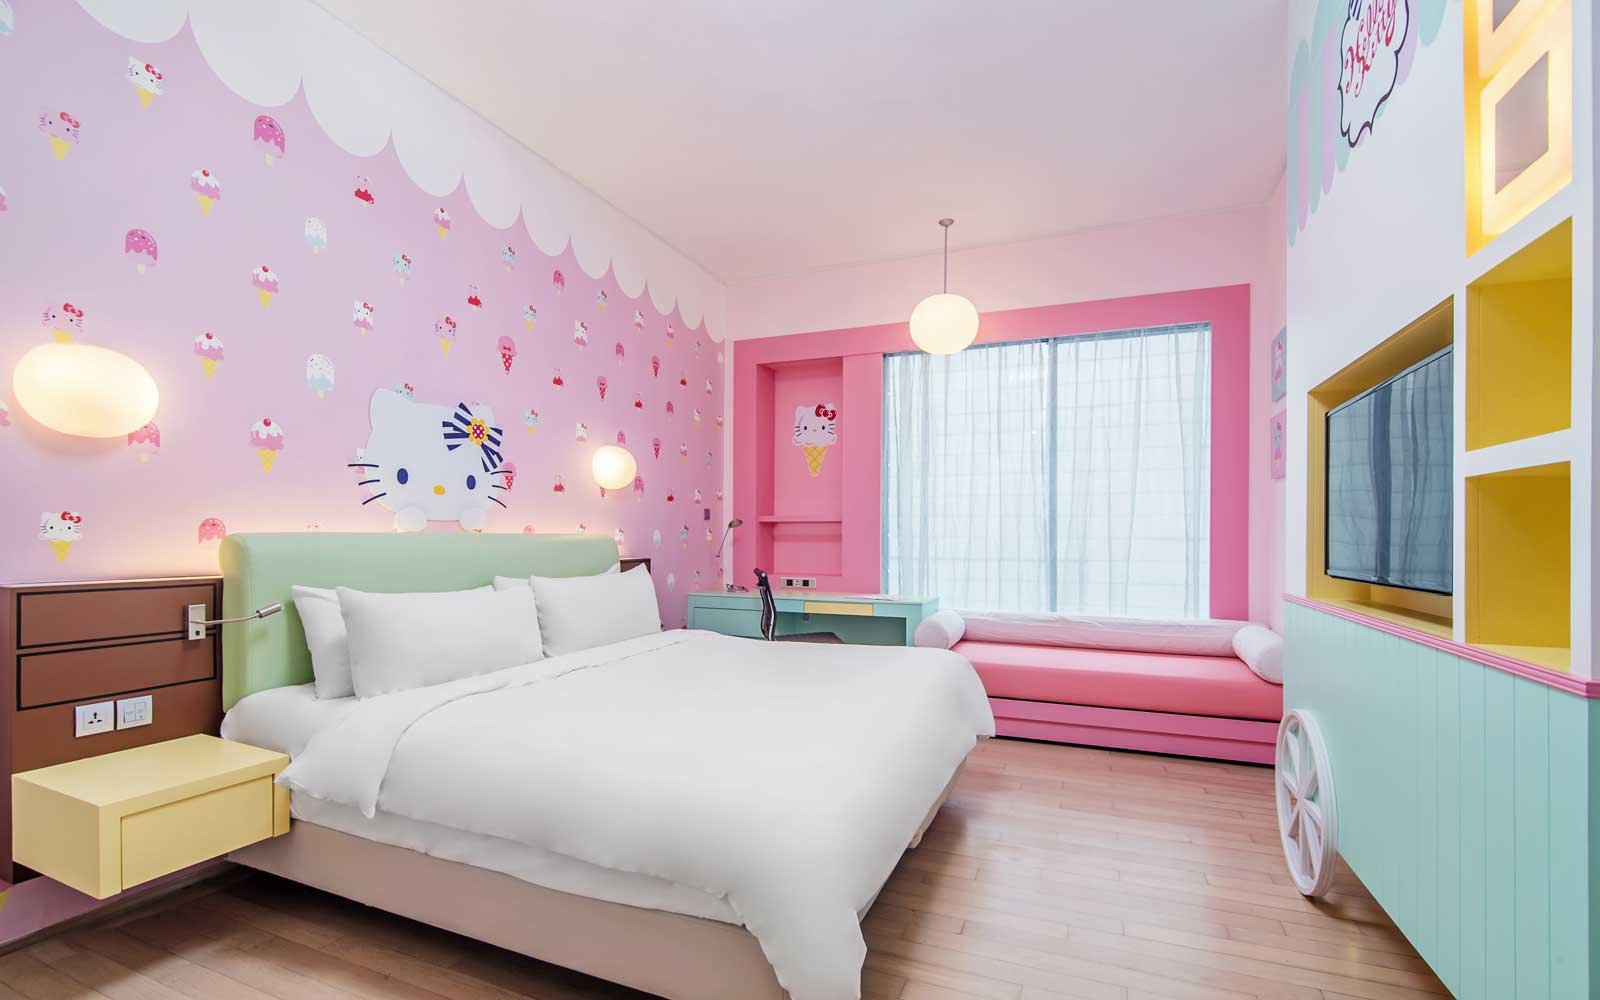 df65e9f06 11 Places That Every Hello Kitty Fan Needs to Visit | Travel + Leisure